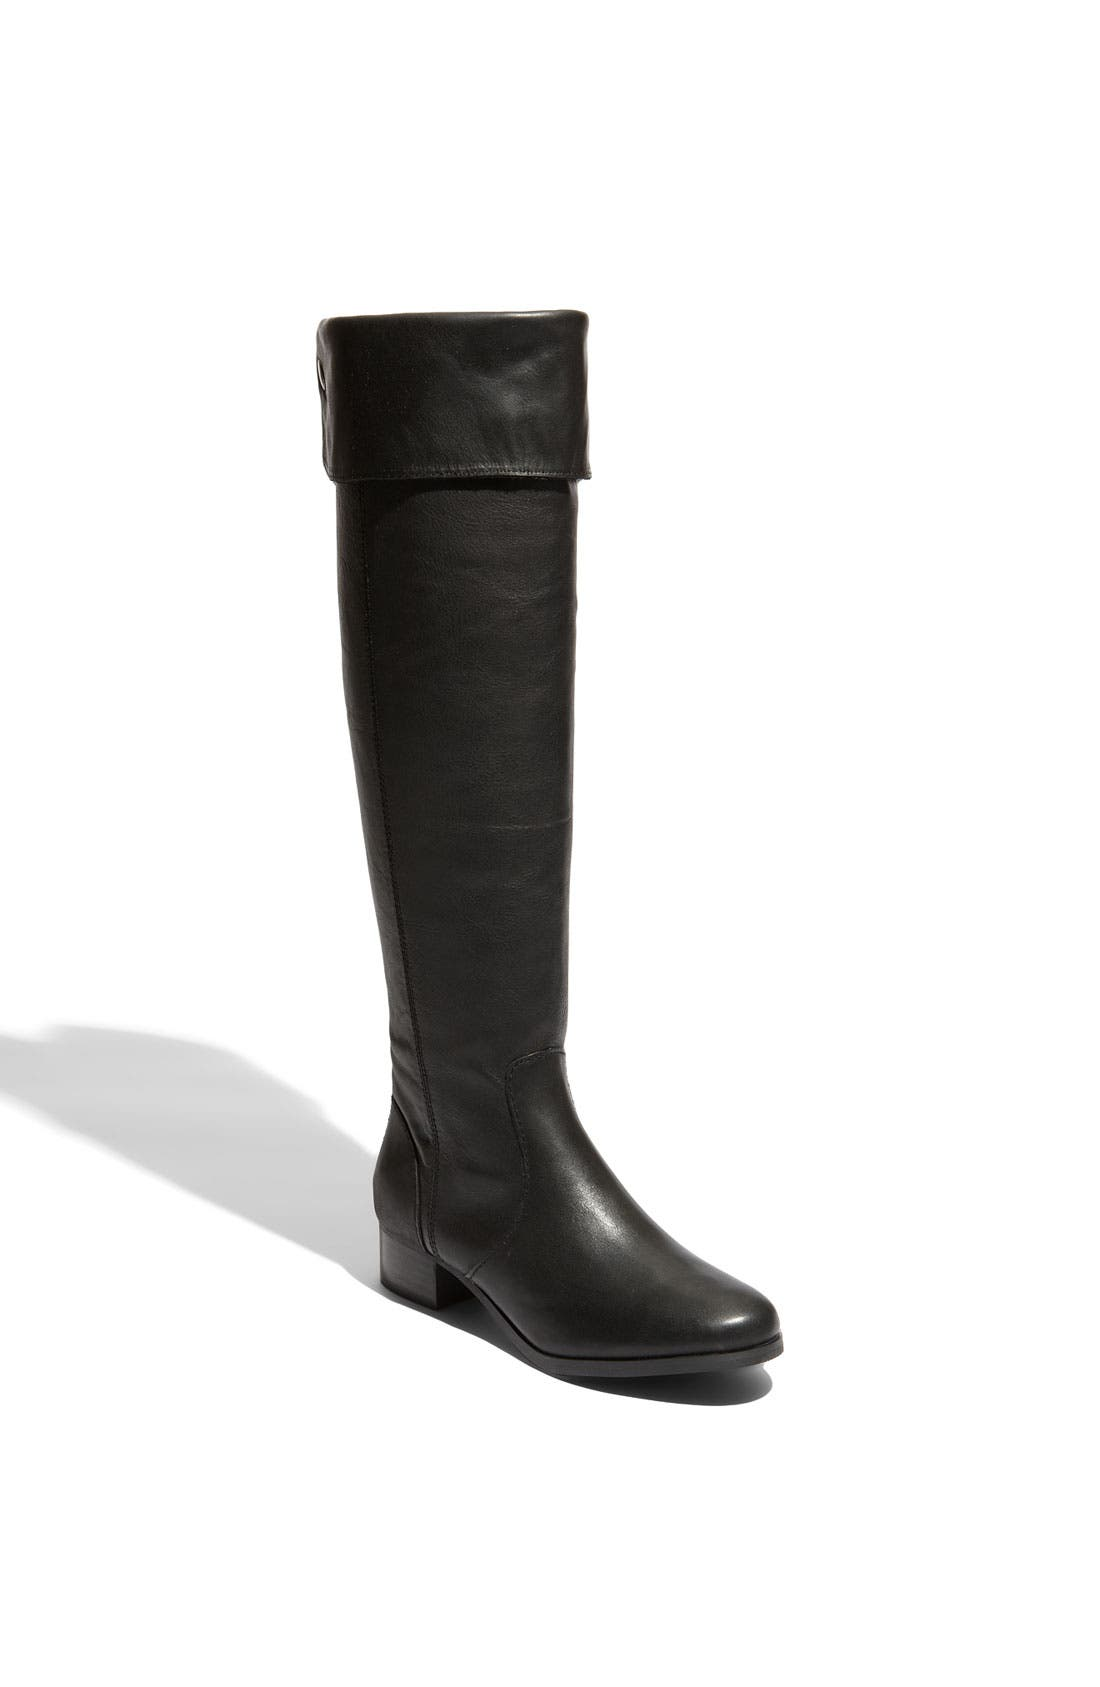 Alternate Image 1 Selected - Seychelles 'True Story' Over the Knee Boot